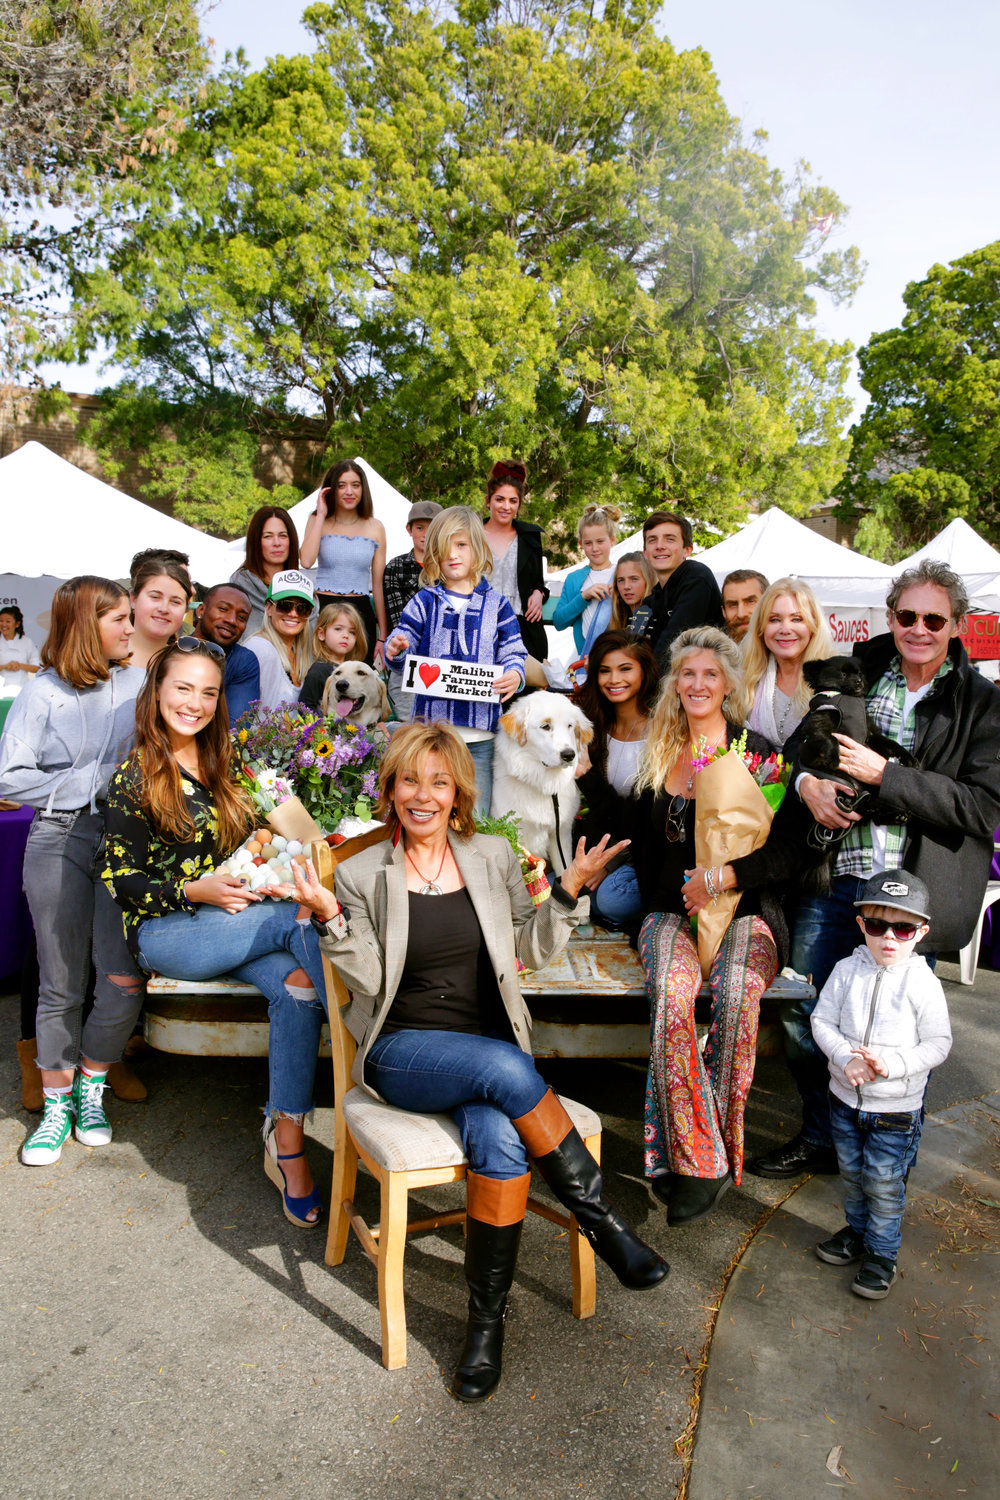 Malibu Farmers Market founder Debra Bianco (front) is involved in numerous philanthropic efforts in the community.